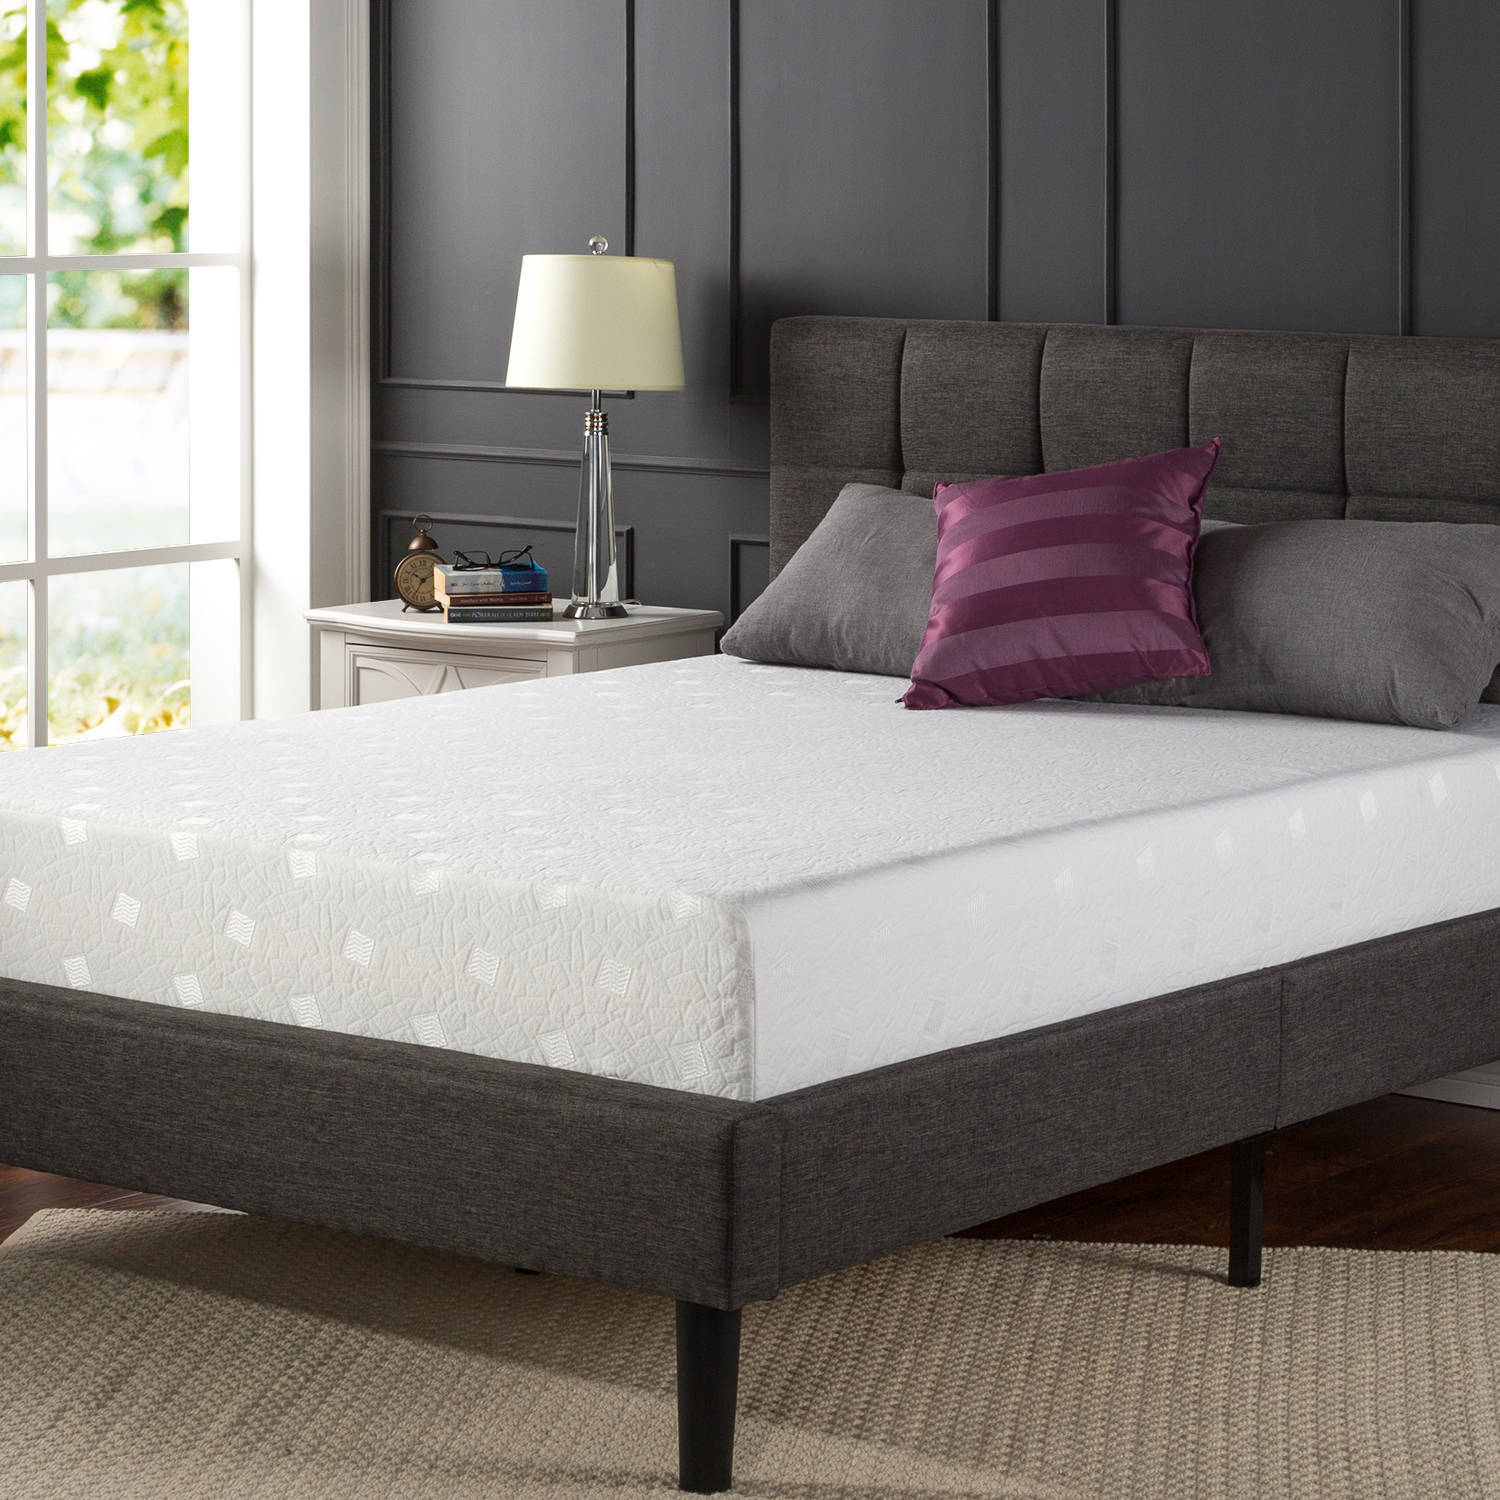 Image of: Memory Foam Futon Mattress Models